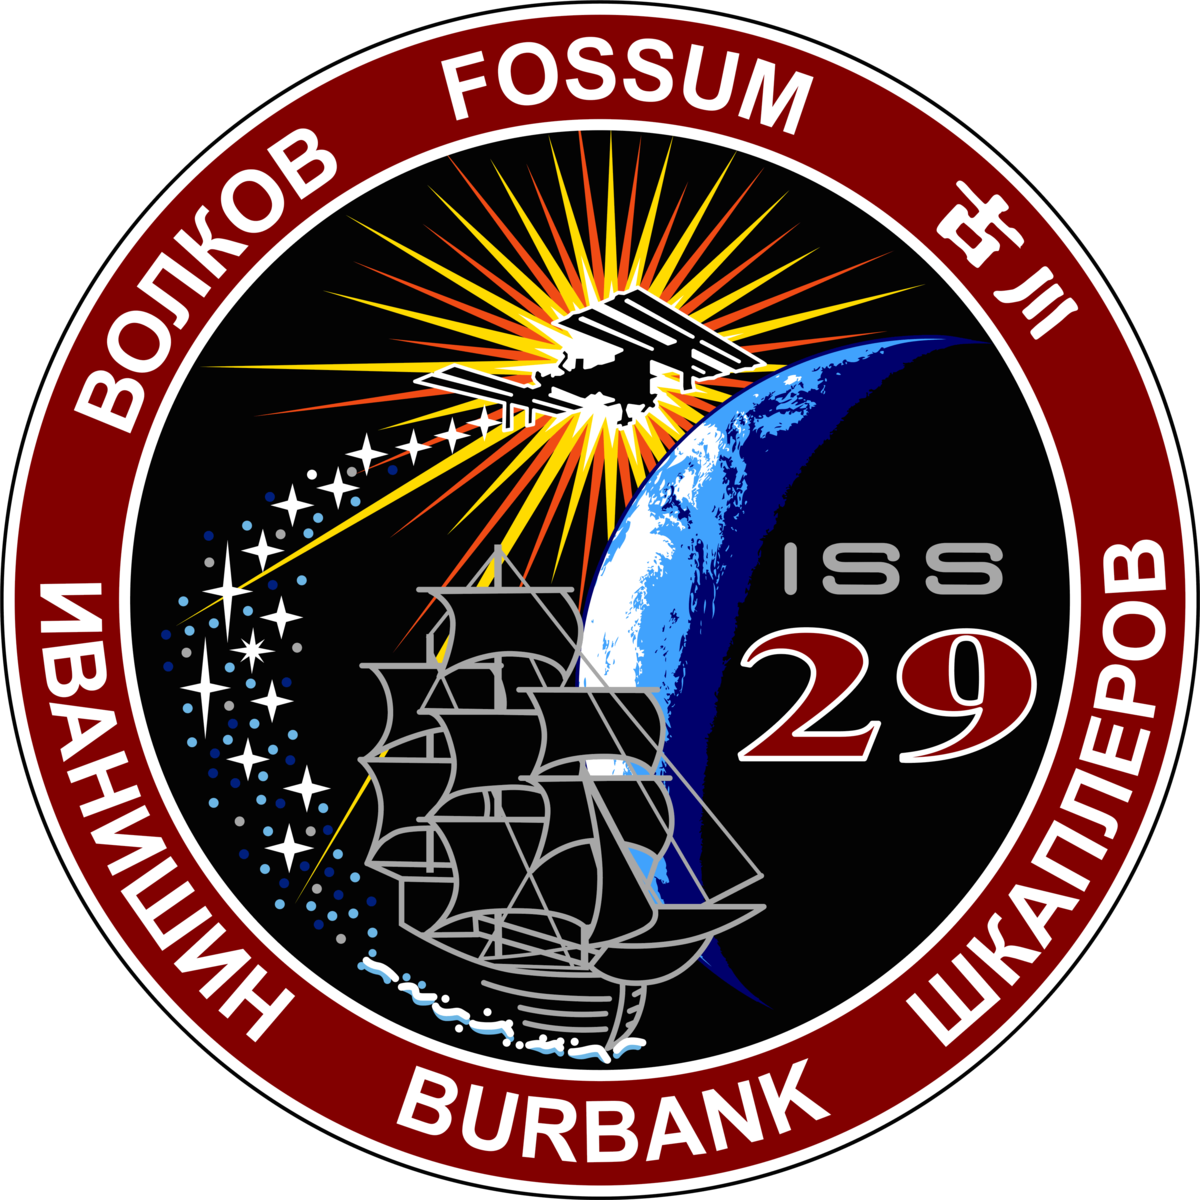 Mission Patches On Mission 4 To The International Space: Expedition 29